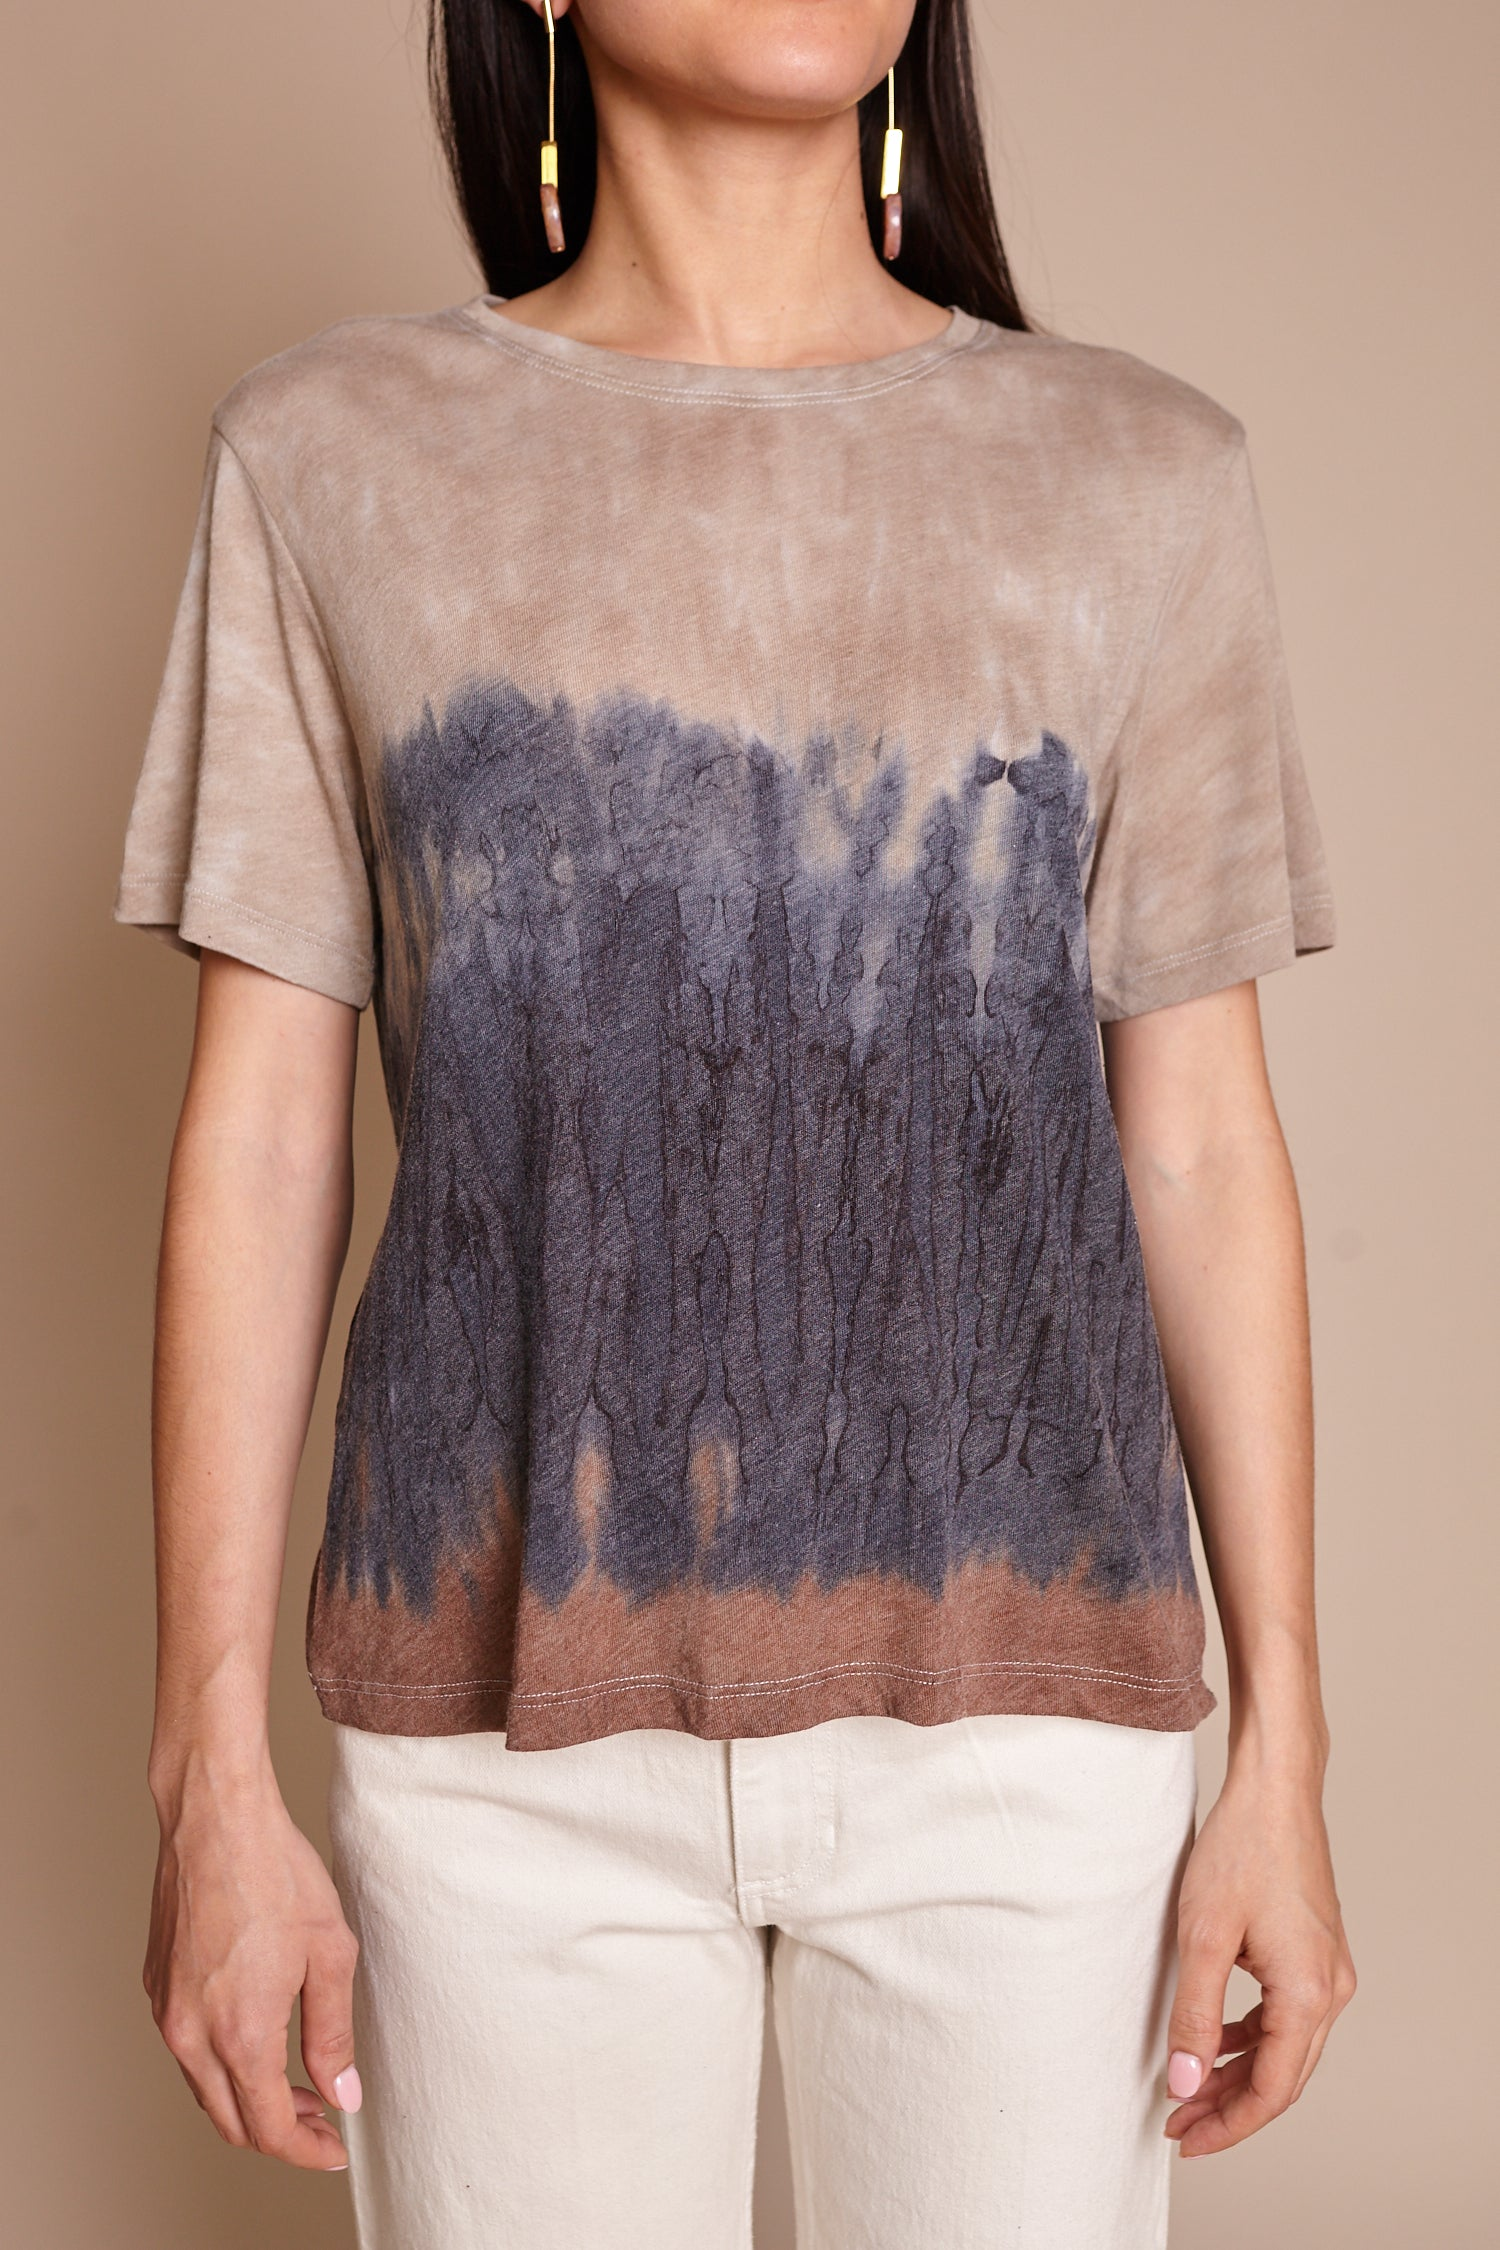 Boxy Tee in Caves Tie Dye